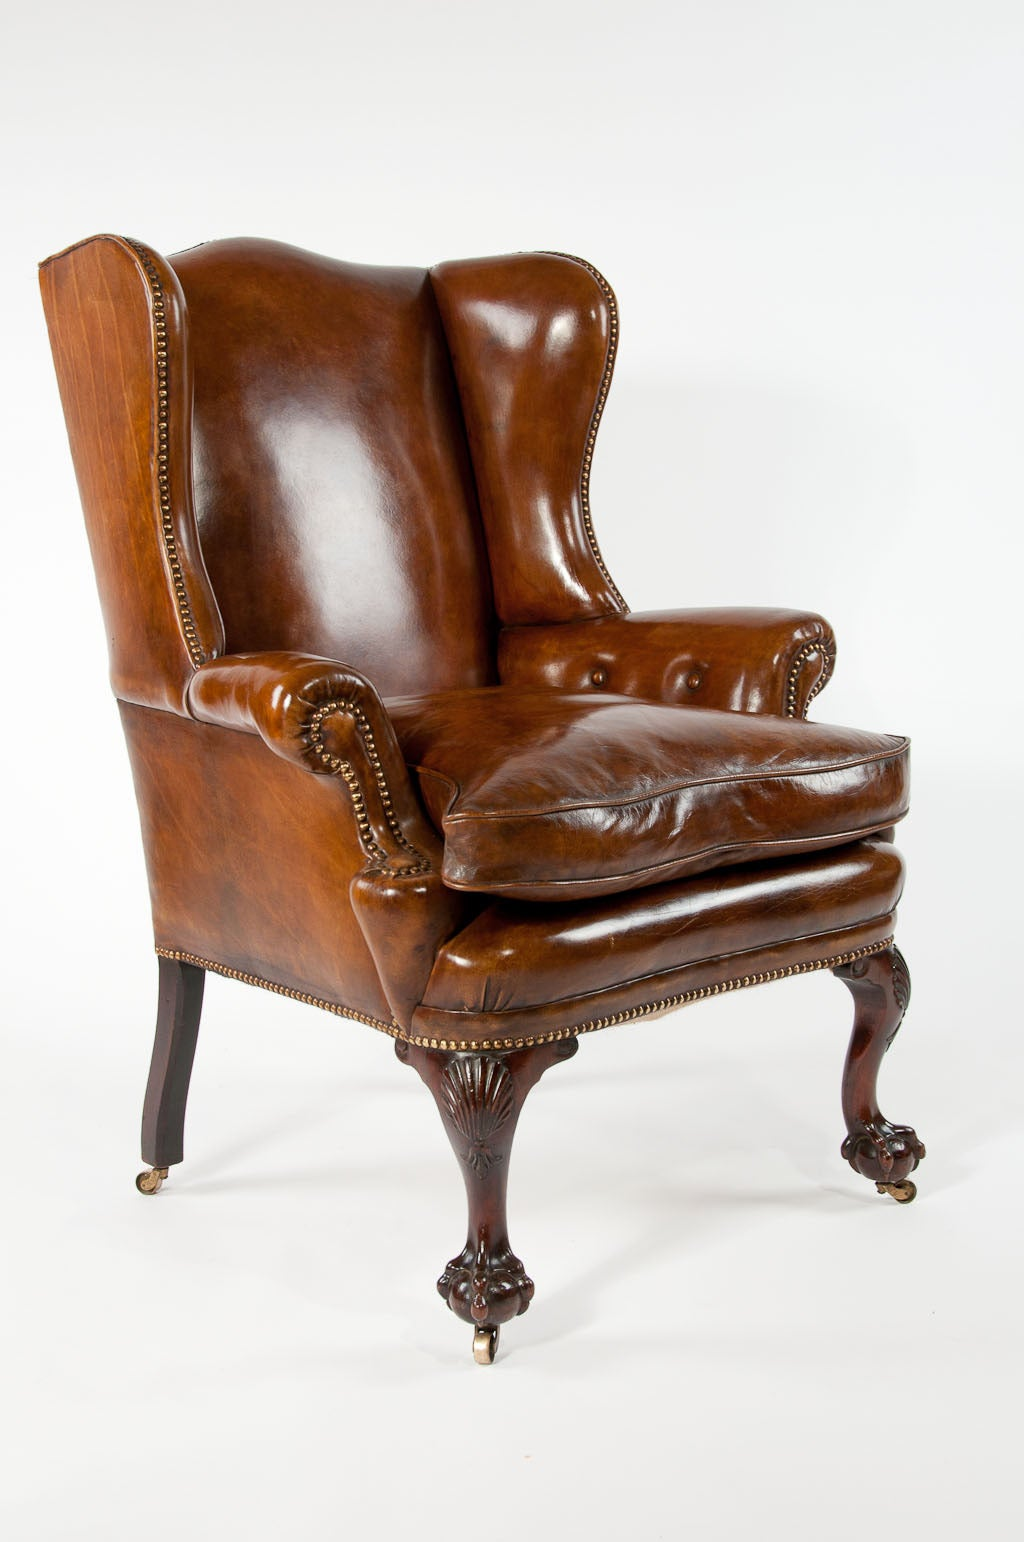 Leather Wing Back Chair 19th Century Walnut Leather Wing Chair At 1stdibs